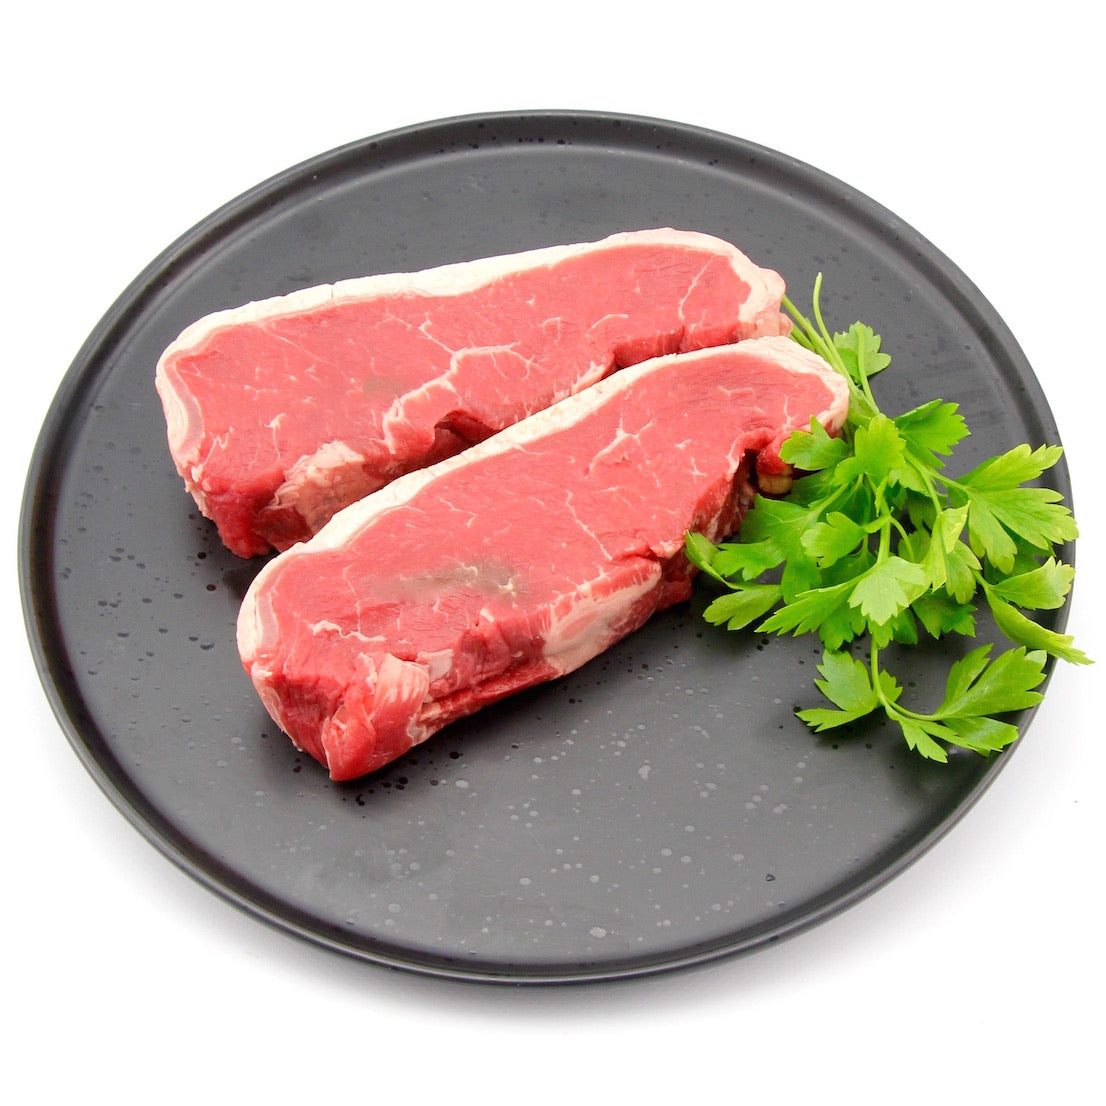 New York SteakÊ - EACH (approx. 210g -250g)